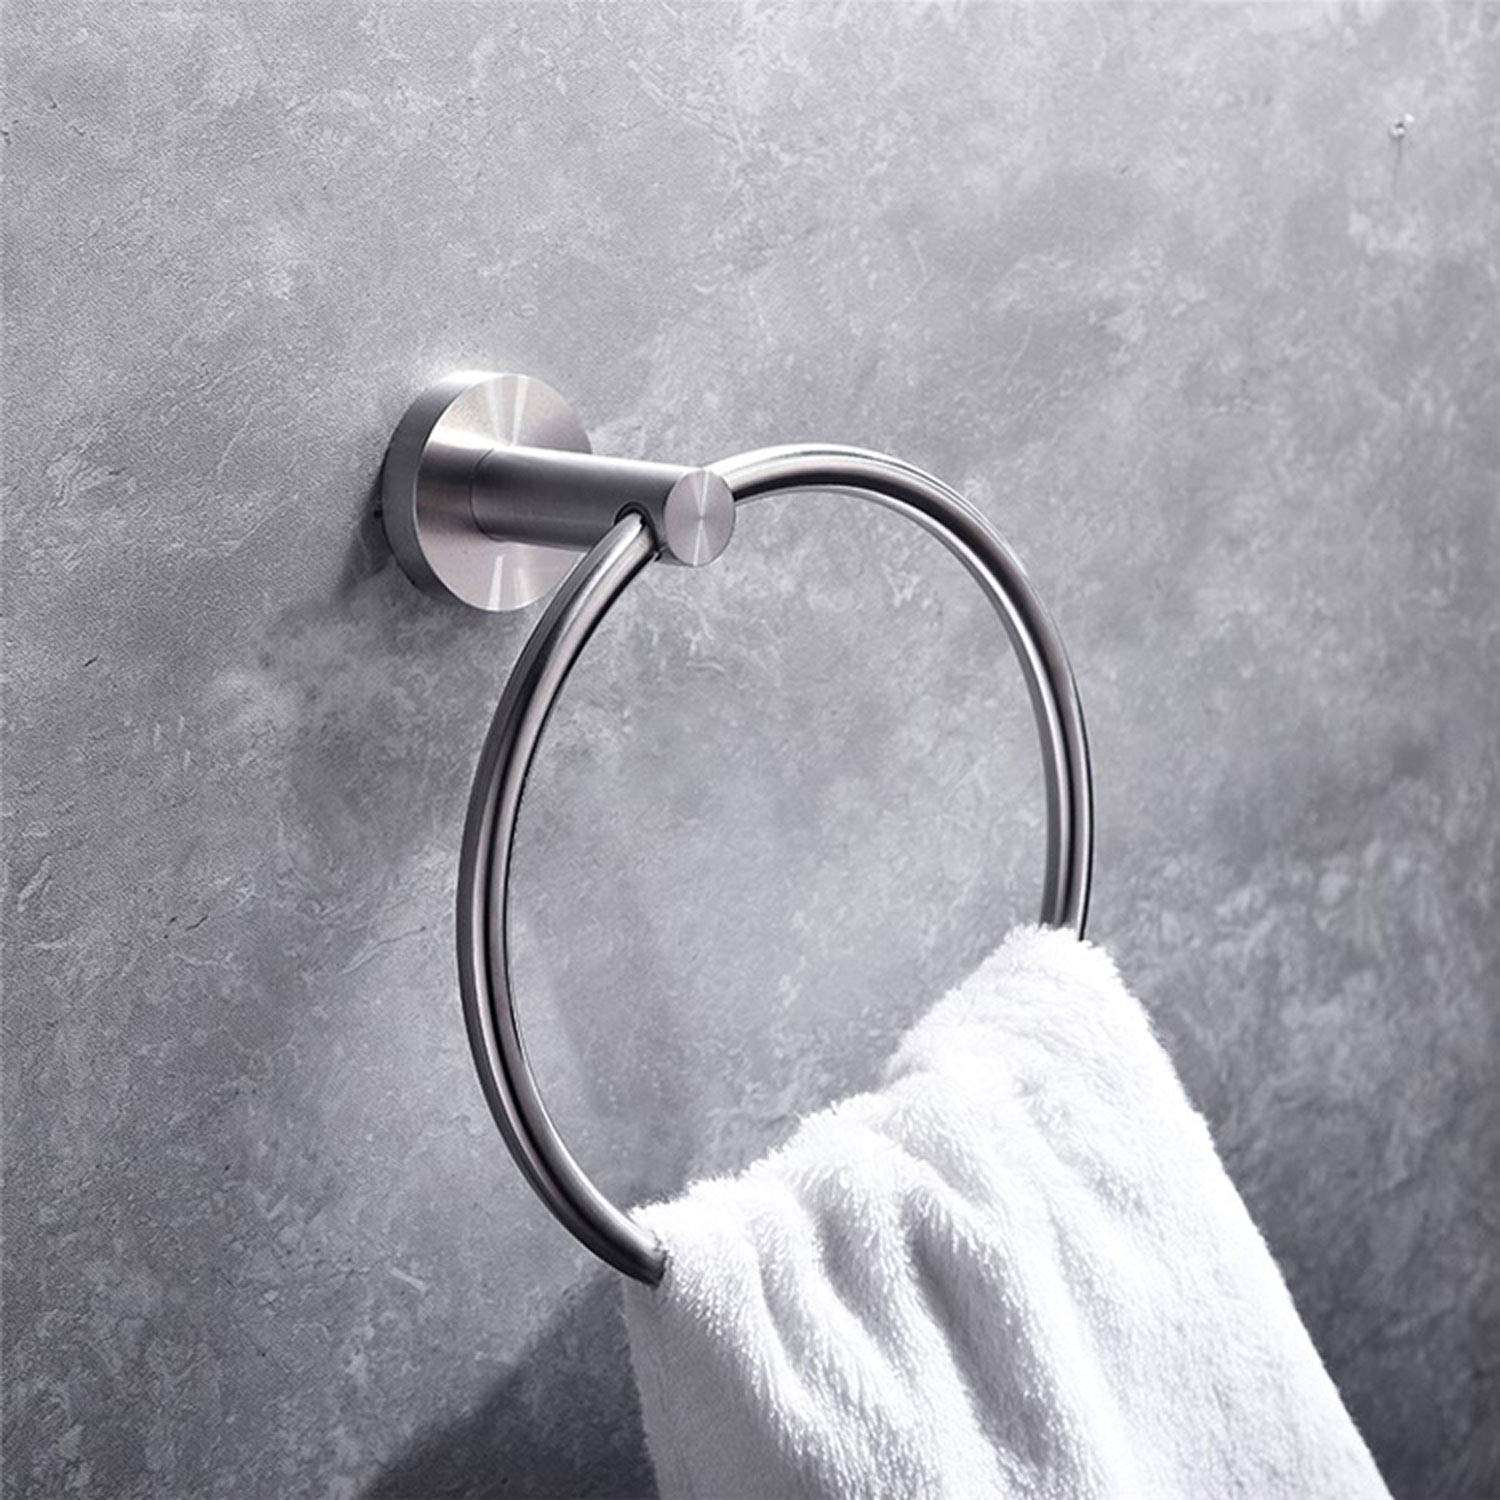 Hand Towel Holder Wall Mounted Kitchen Towel Circle Ring Hanger Hardware 2 Pack JOMAY Towel Ring for Bathroom Silver Rustproof Brushed SUS 304 Stainless Steel